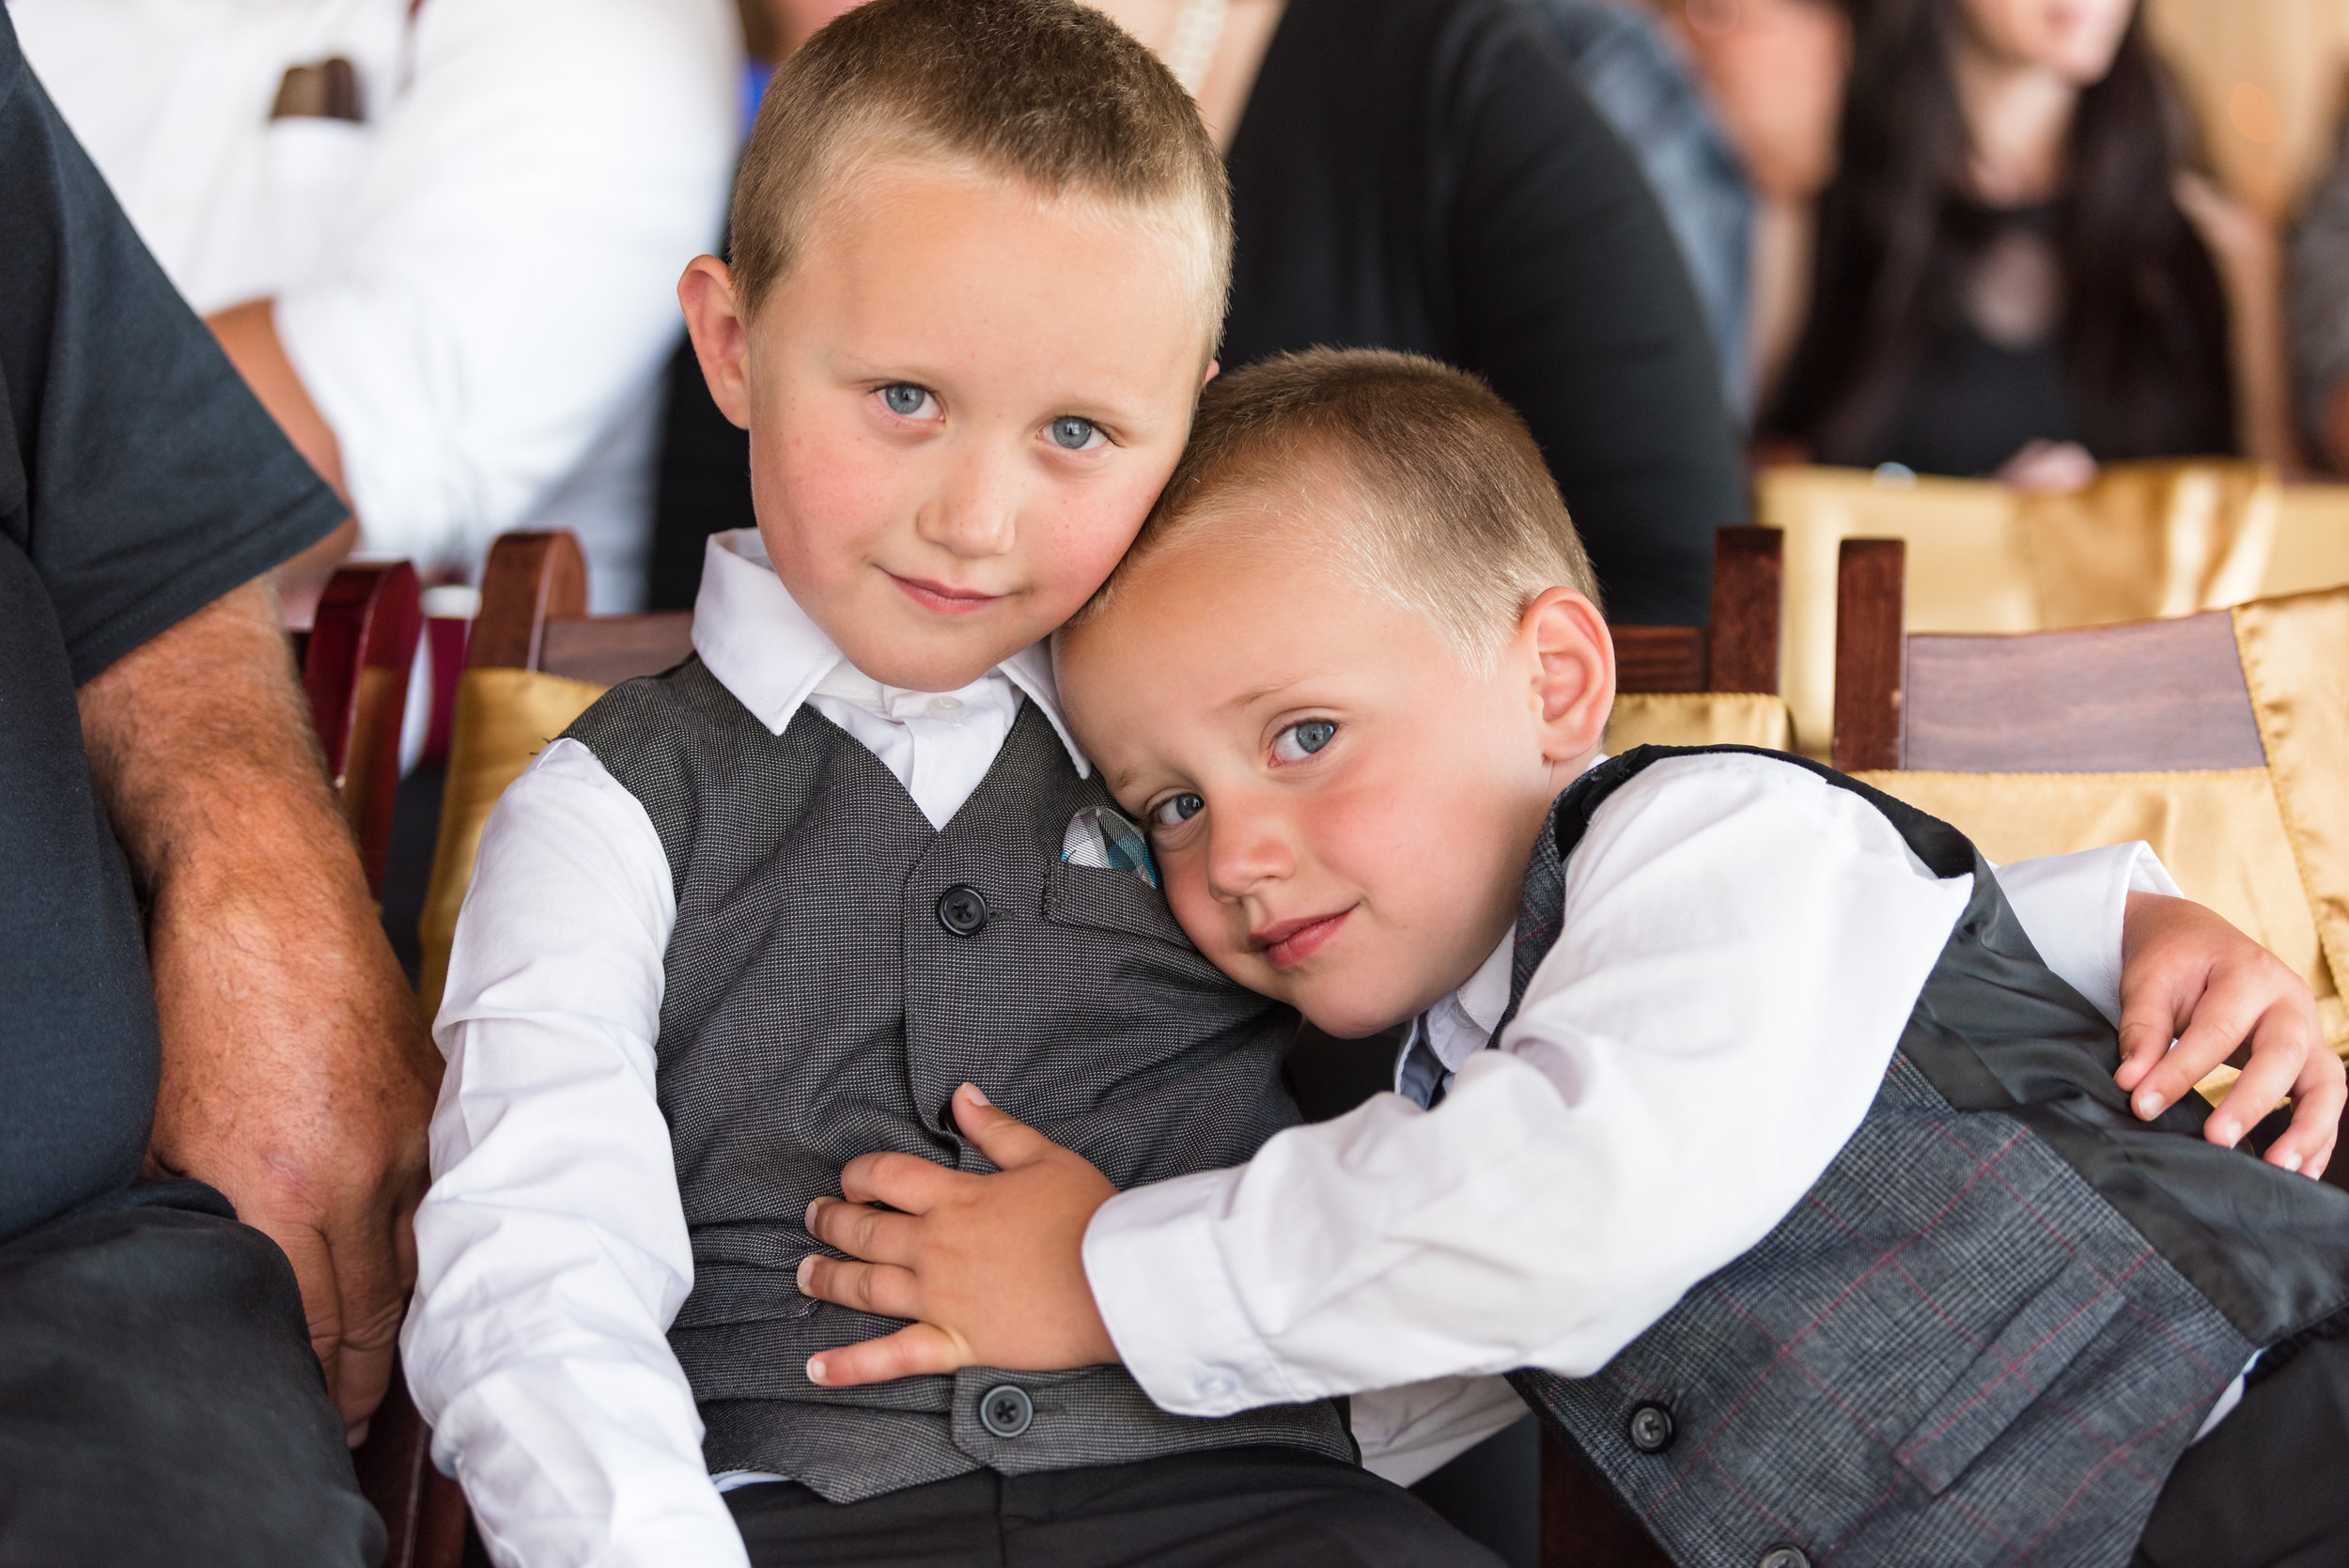 Could the ring bearers be any cuter?! Is your heart melting right now??